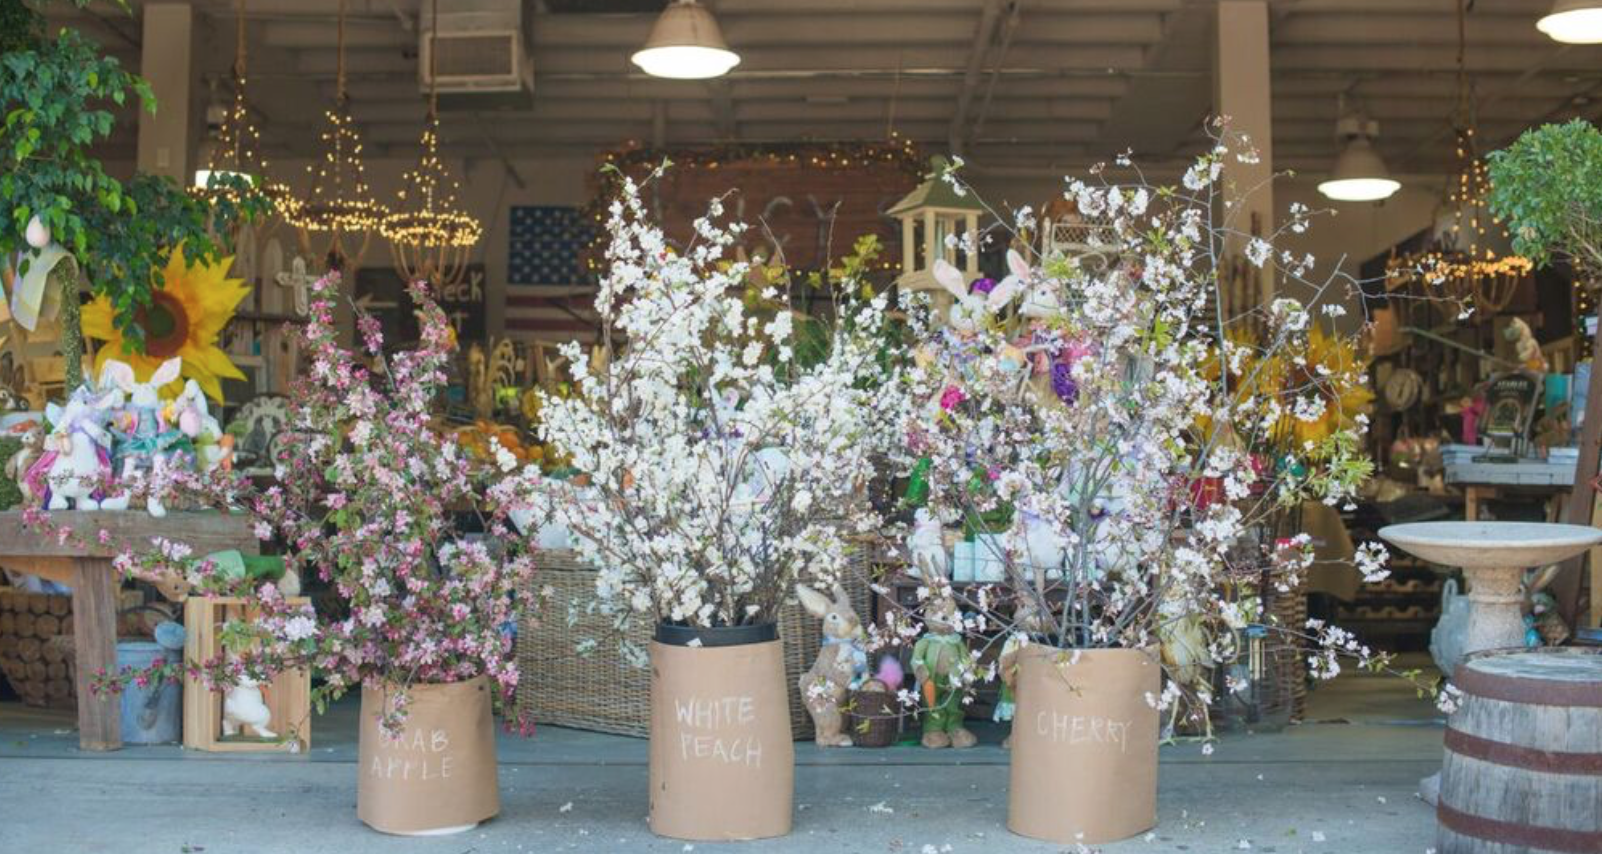 Beautiful dogwood and white peach branches make for beautiful spring decor!